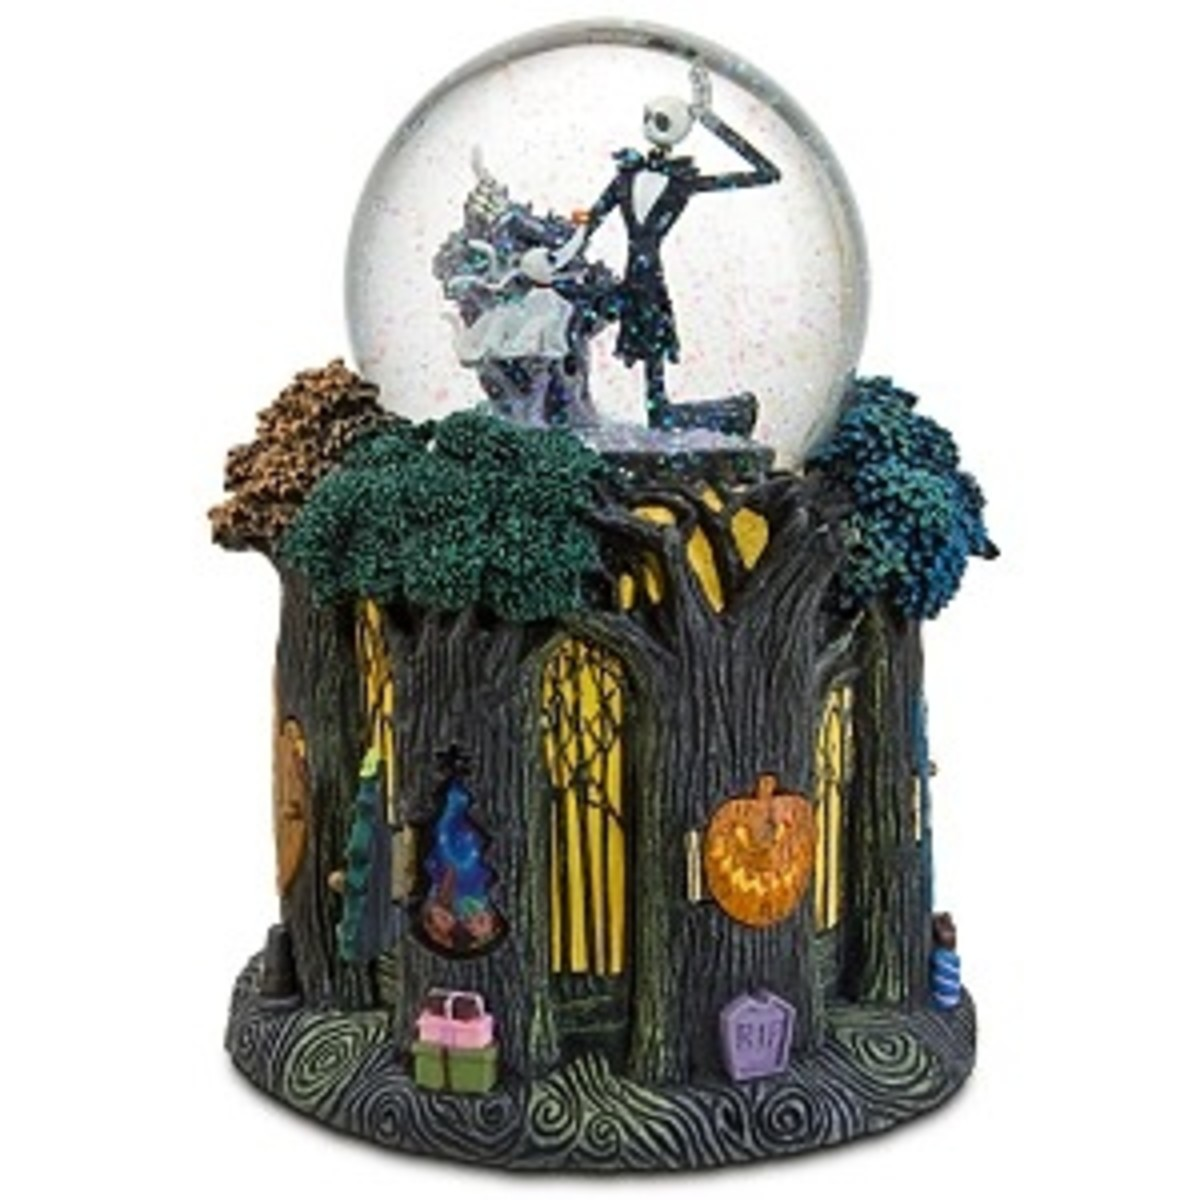 Jack Skellington Snow Globe - Nightmare Before Christmas